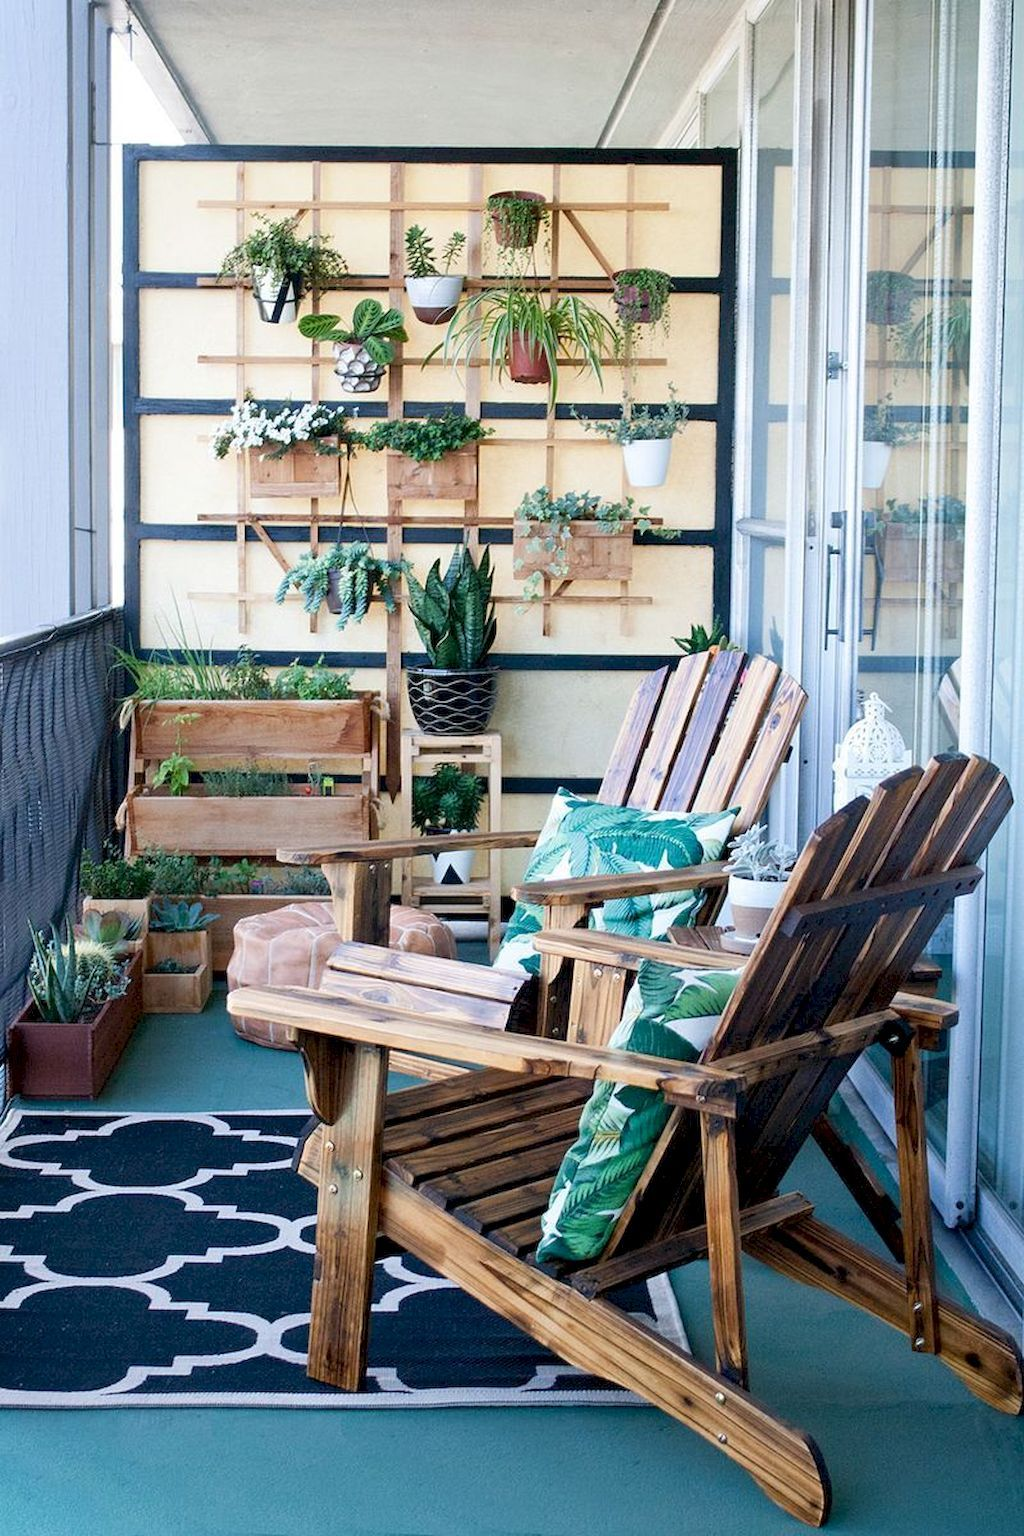 50 Best Balcony Garden Ideas And Designs For 2019: 85 Small Apartment Balcony Decorating Ideas